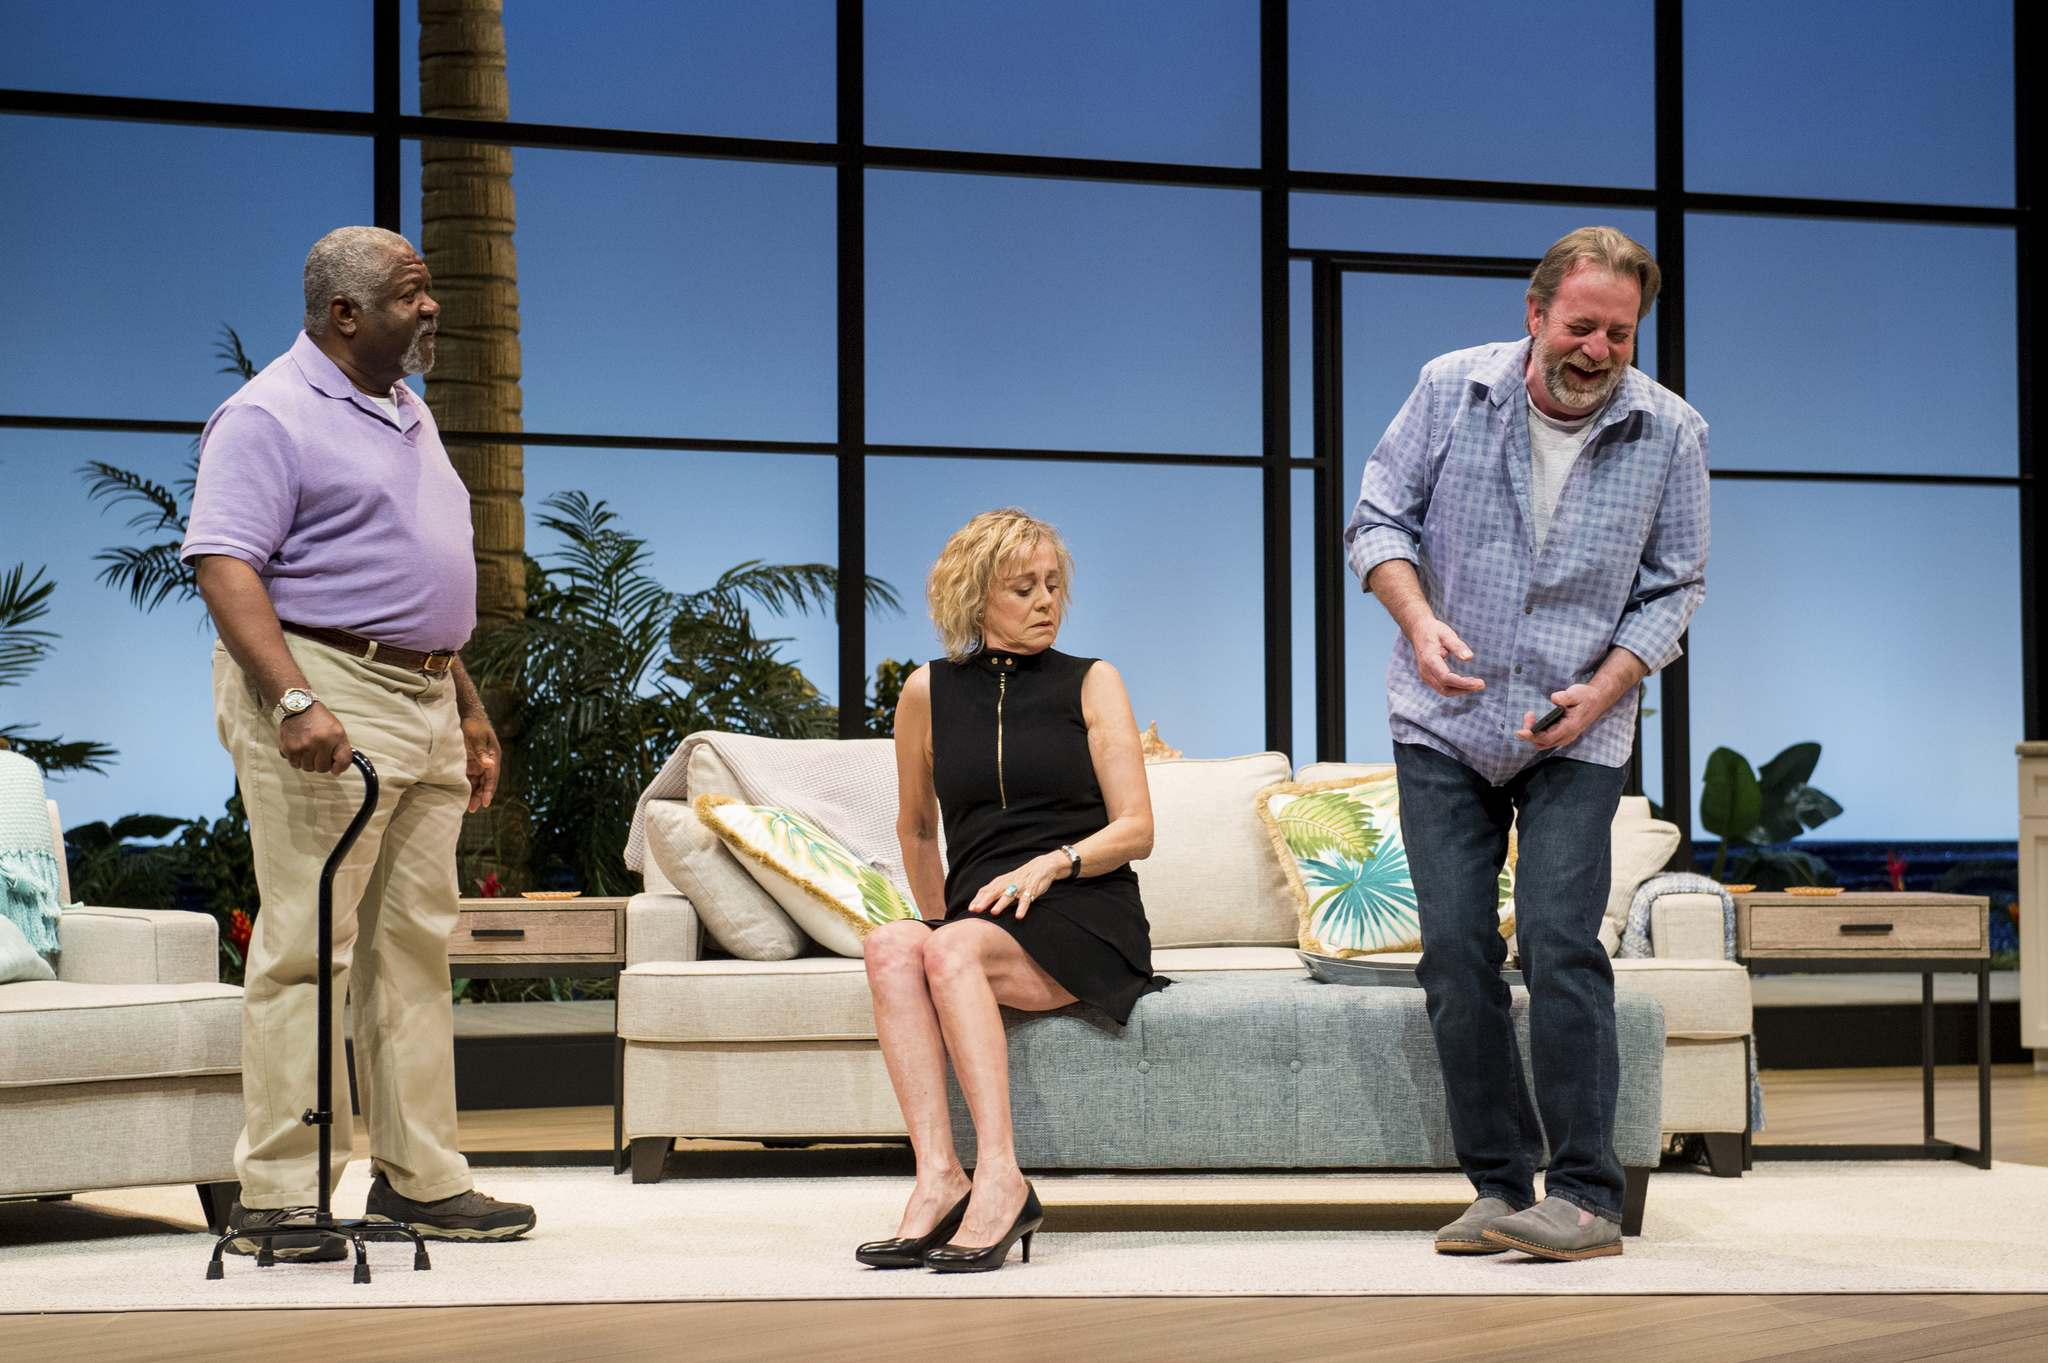 From left: Alvin Sanders, Fiona Reid and C. David Johnson in Morning After Grace. (Dylan Hewlett photo)</p></p>